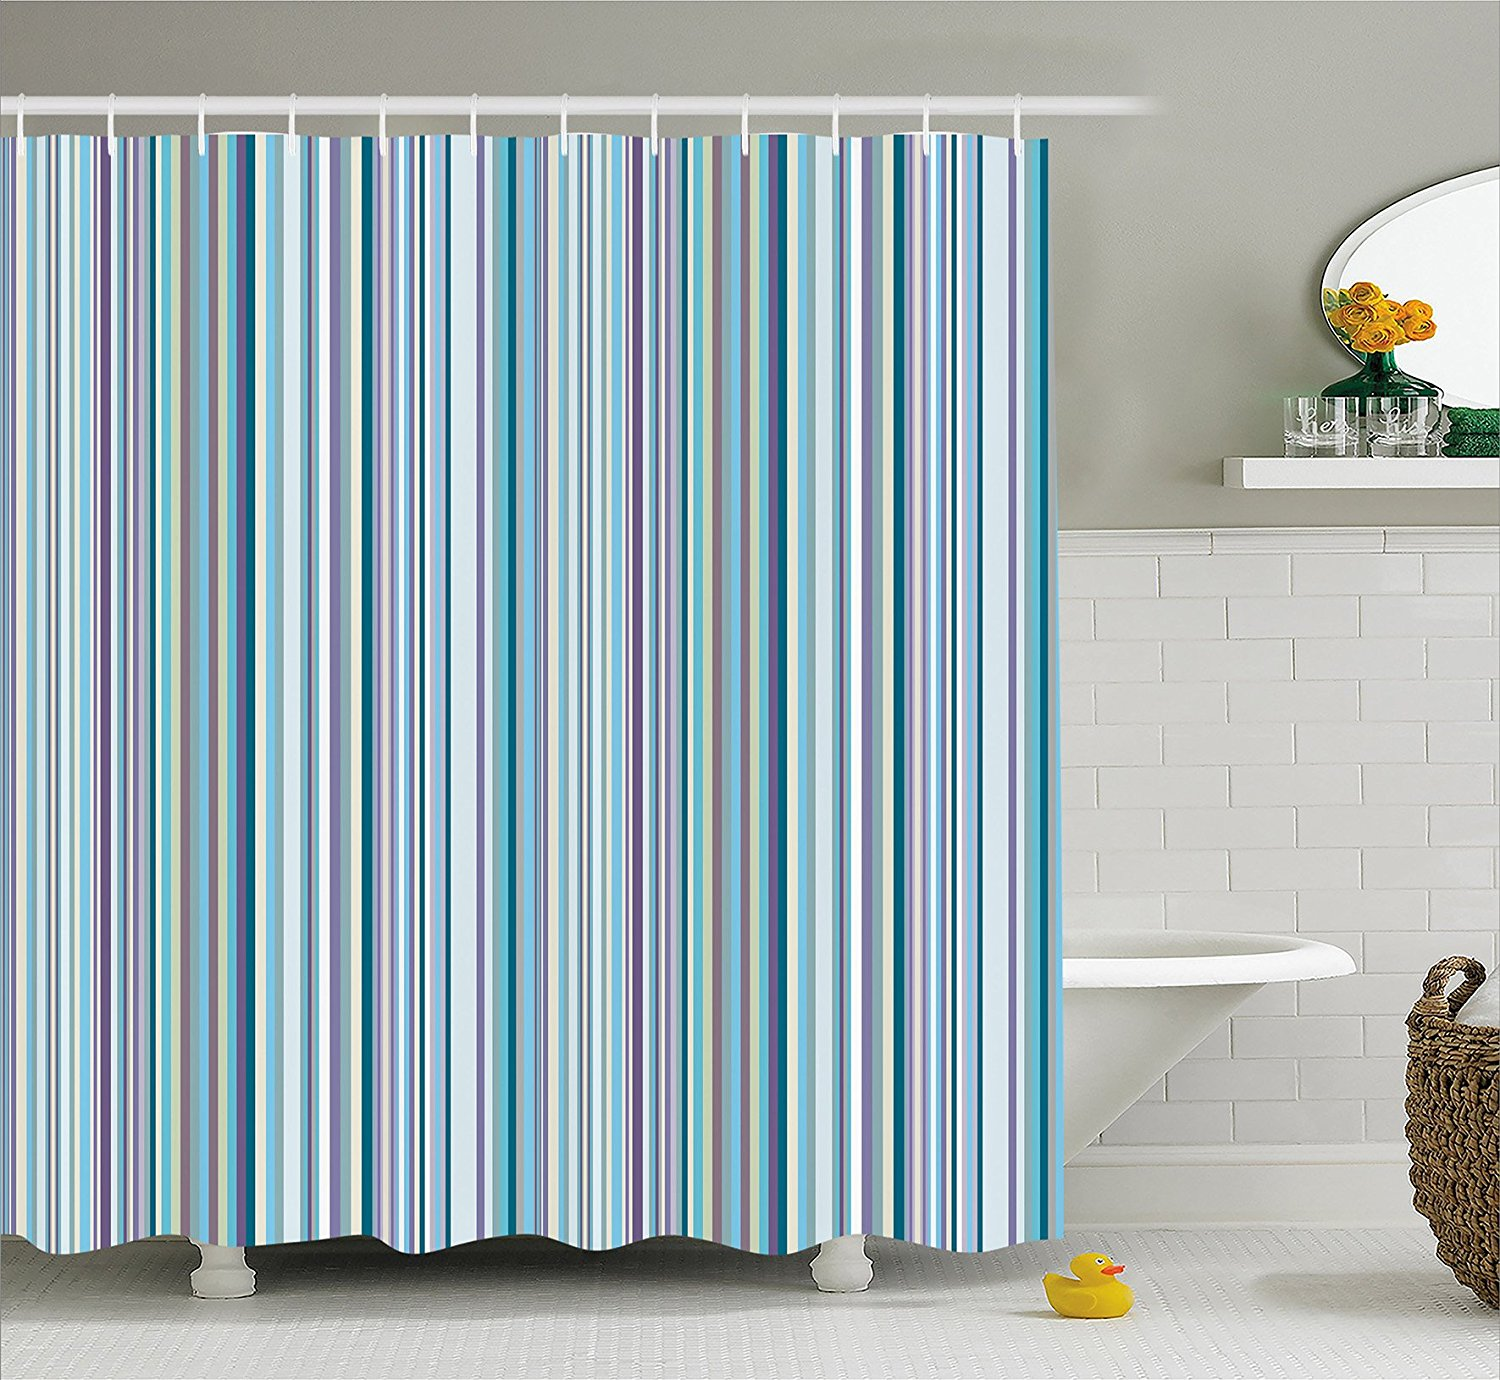 Striped Shower Curtain Set Blue Purple Teal Aqua Lavender Colored Vertical Stripes Geometric Abstract Vintage Fabric Bath Decor Shower Curtains Aliexpress